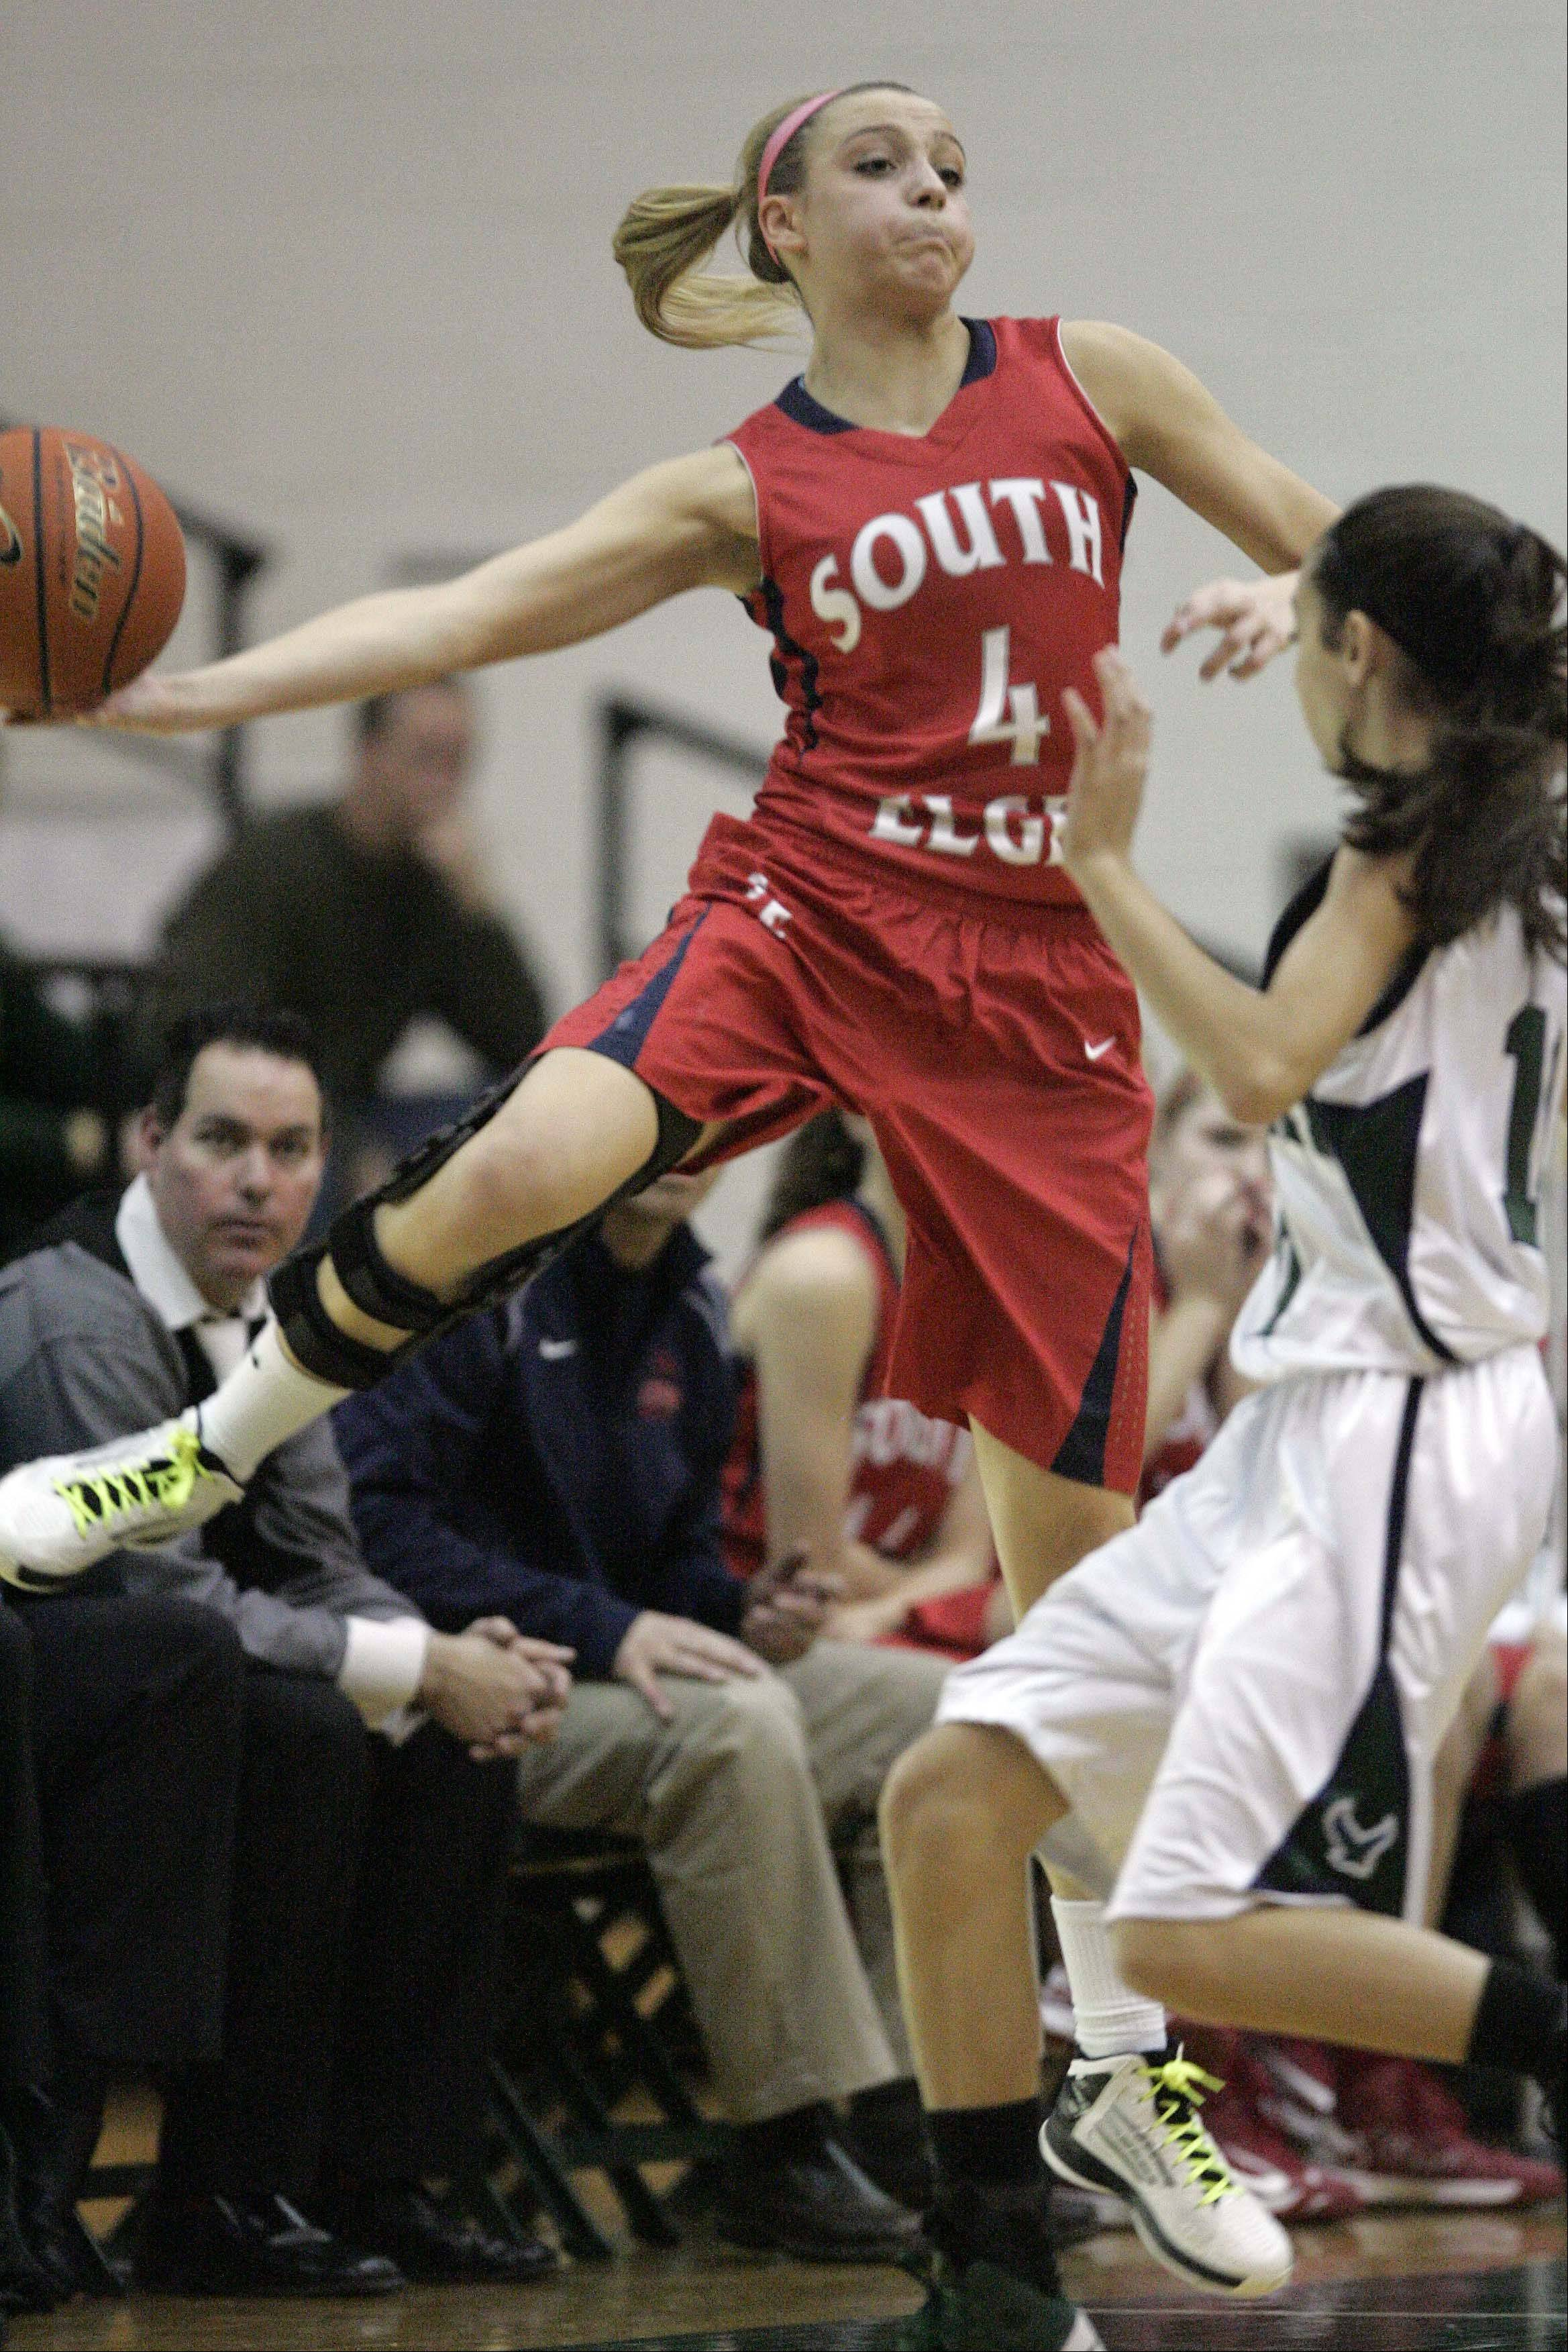 South Elgin junior Savanah Uveges (4) leaps out of bounds as she tries to save an errant pass during the Storm's win at Bartlett Saturday.